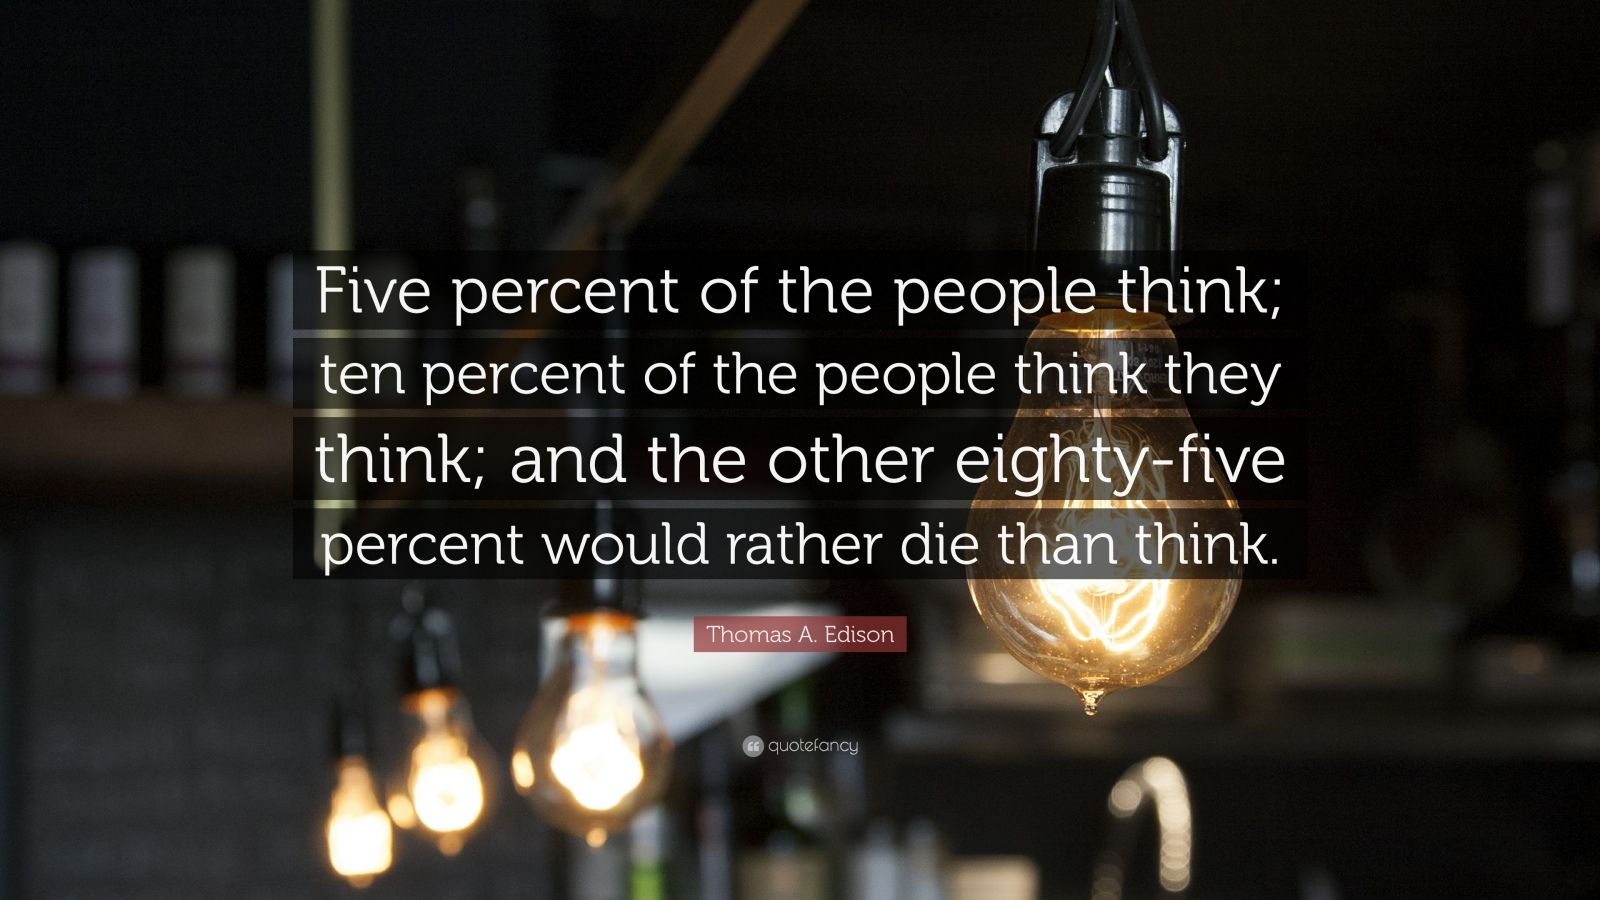 """Thomas A. Edison Quote: """"Five percent of the people think;  ten percent of the people think they think;  and the other eighty-five percent would rather die than think."""""""